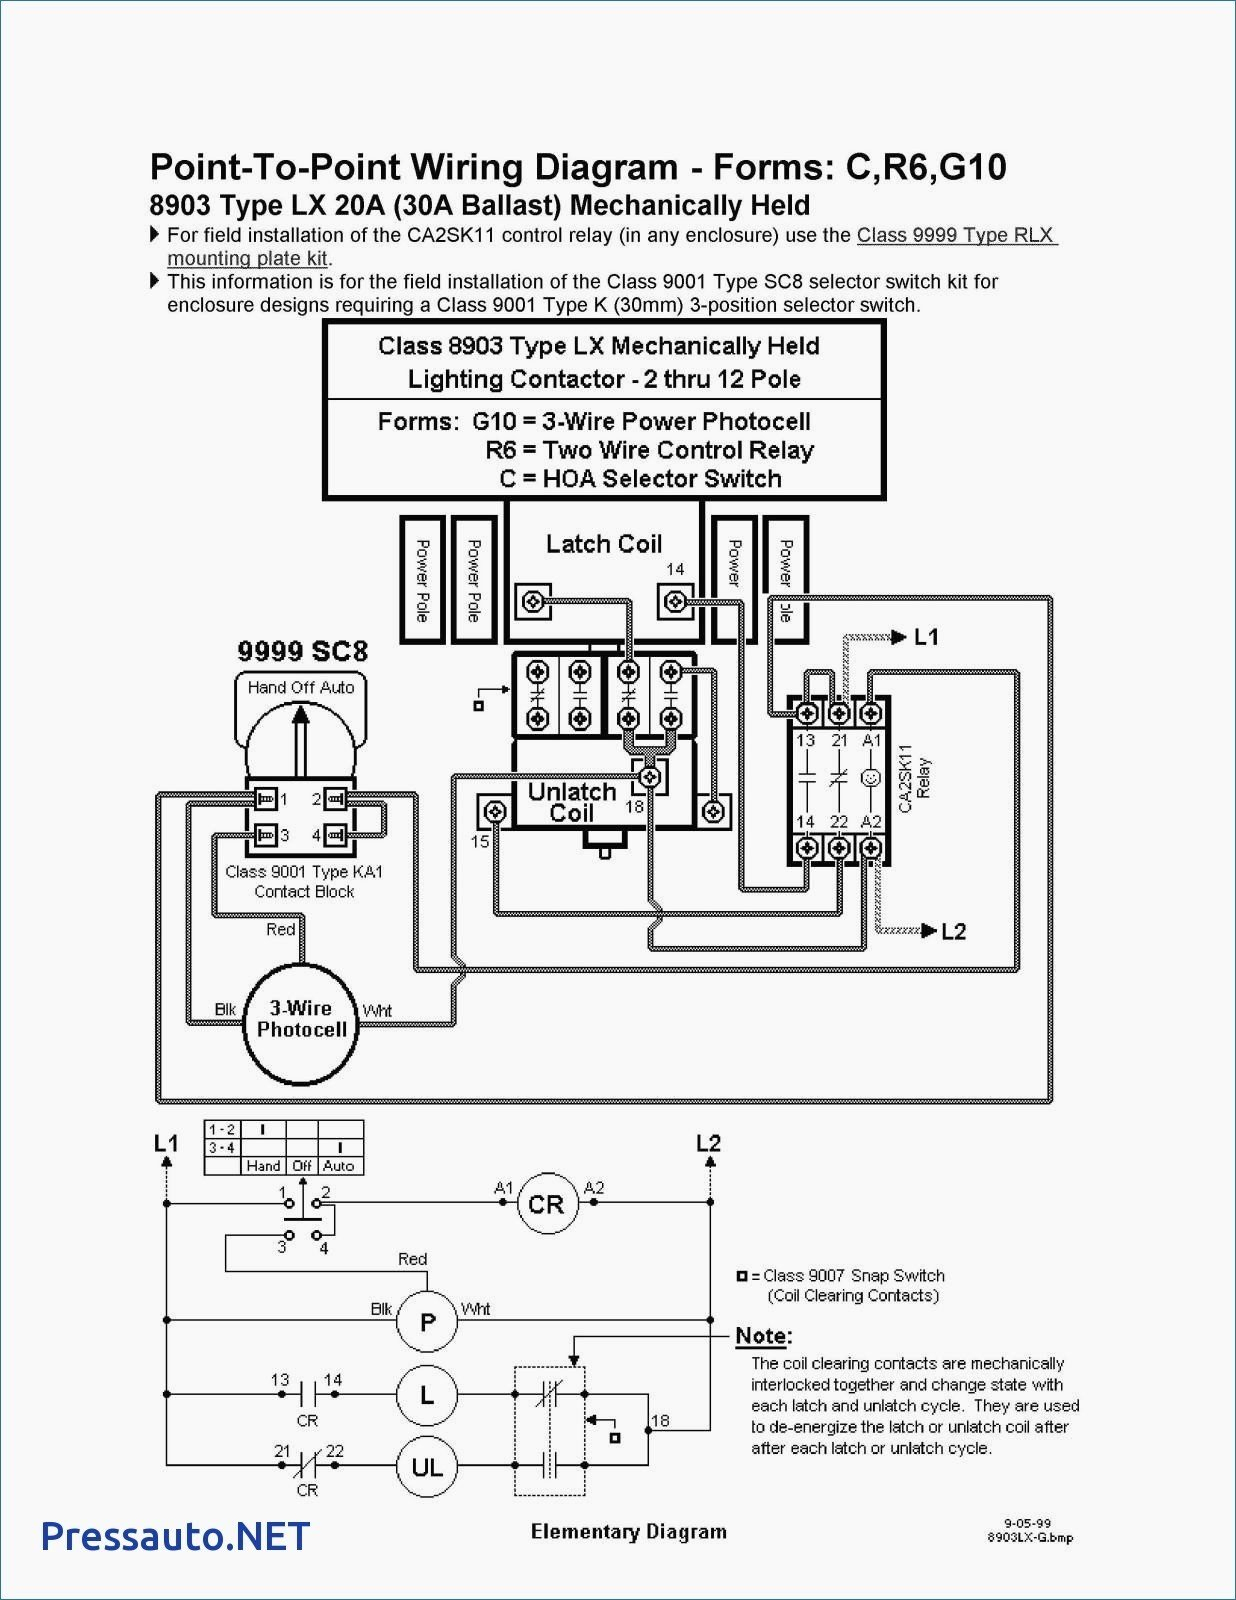 Contactor And Photocell Wiring Diagram Pdf - Wiring Diagrams Click - Photocell Wiring Diagram Pdf